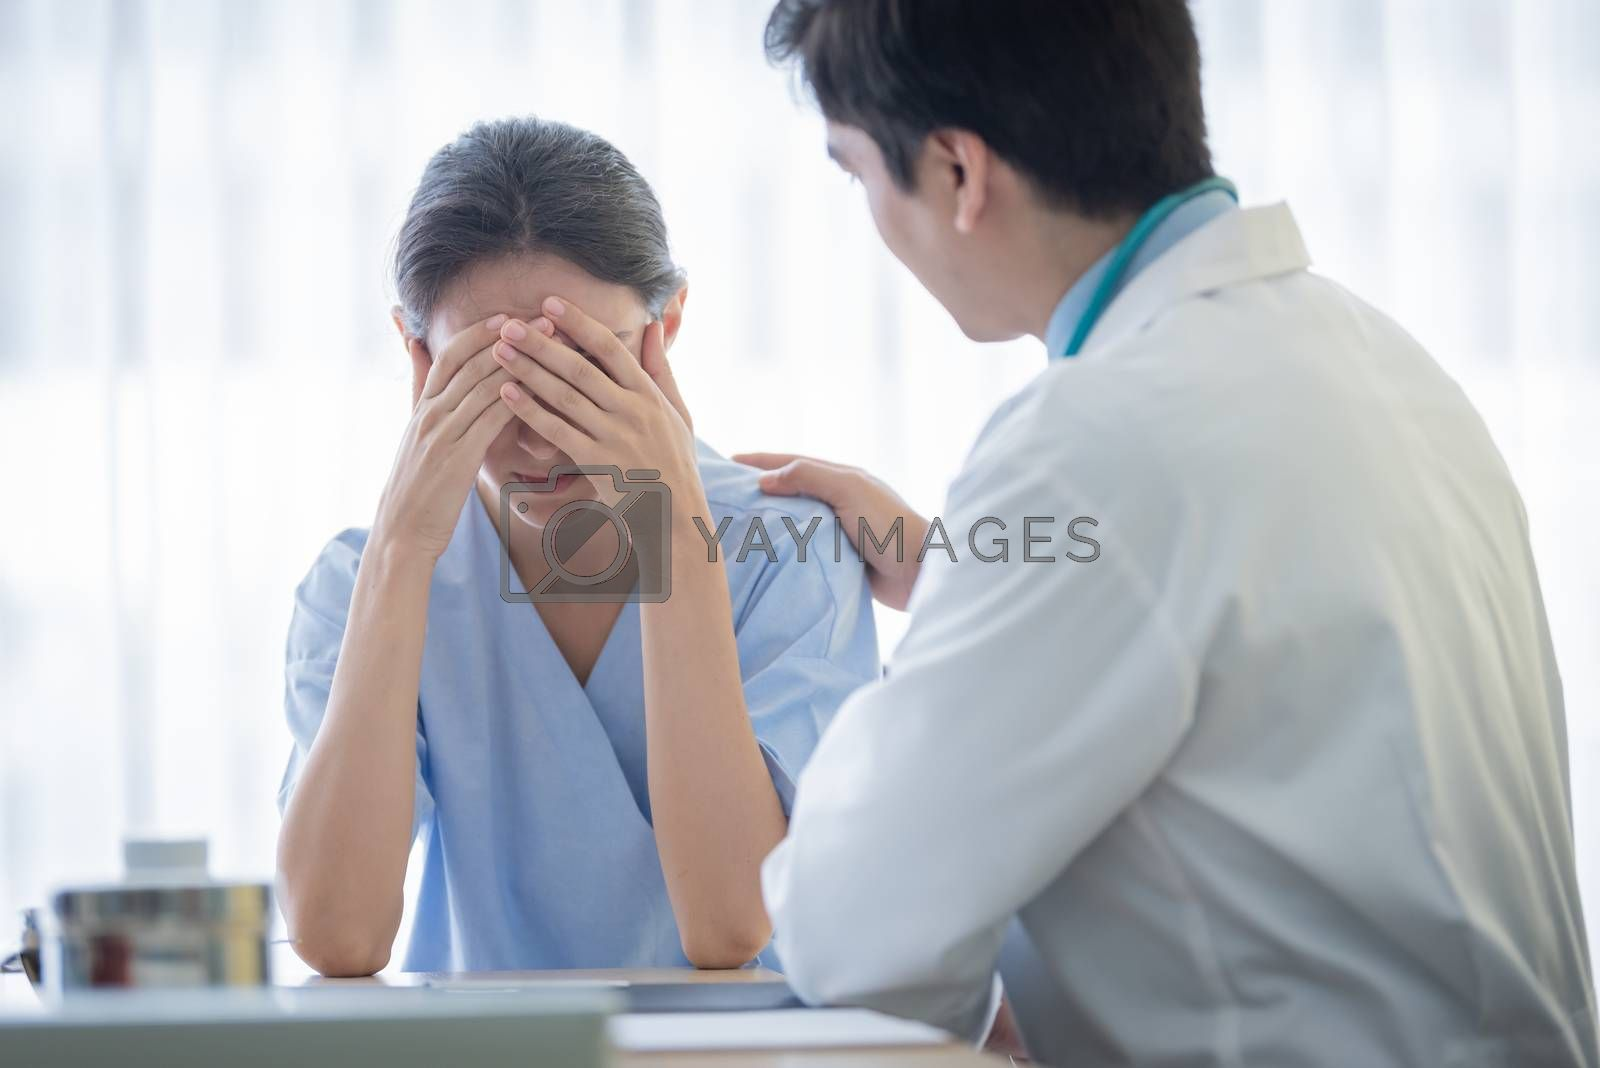 A doctor takes care of a sick patient woman with sadness and unhappiness at the hospital or medical clinic.